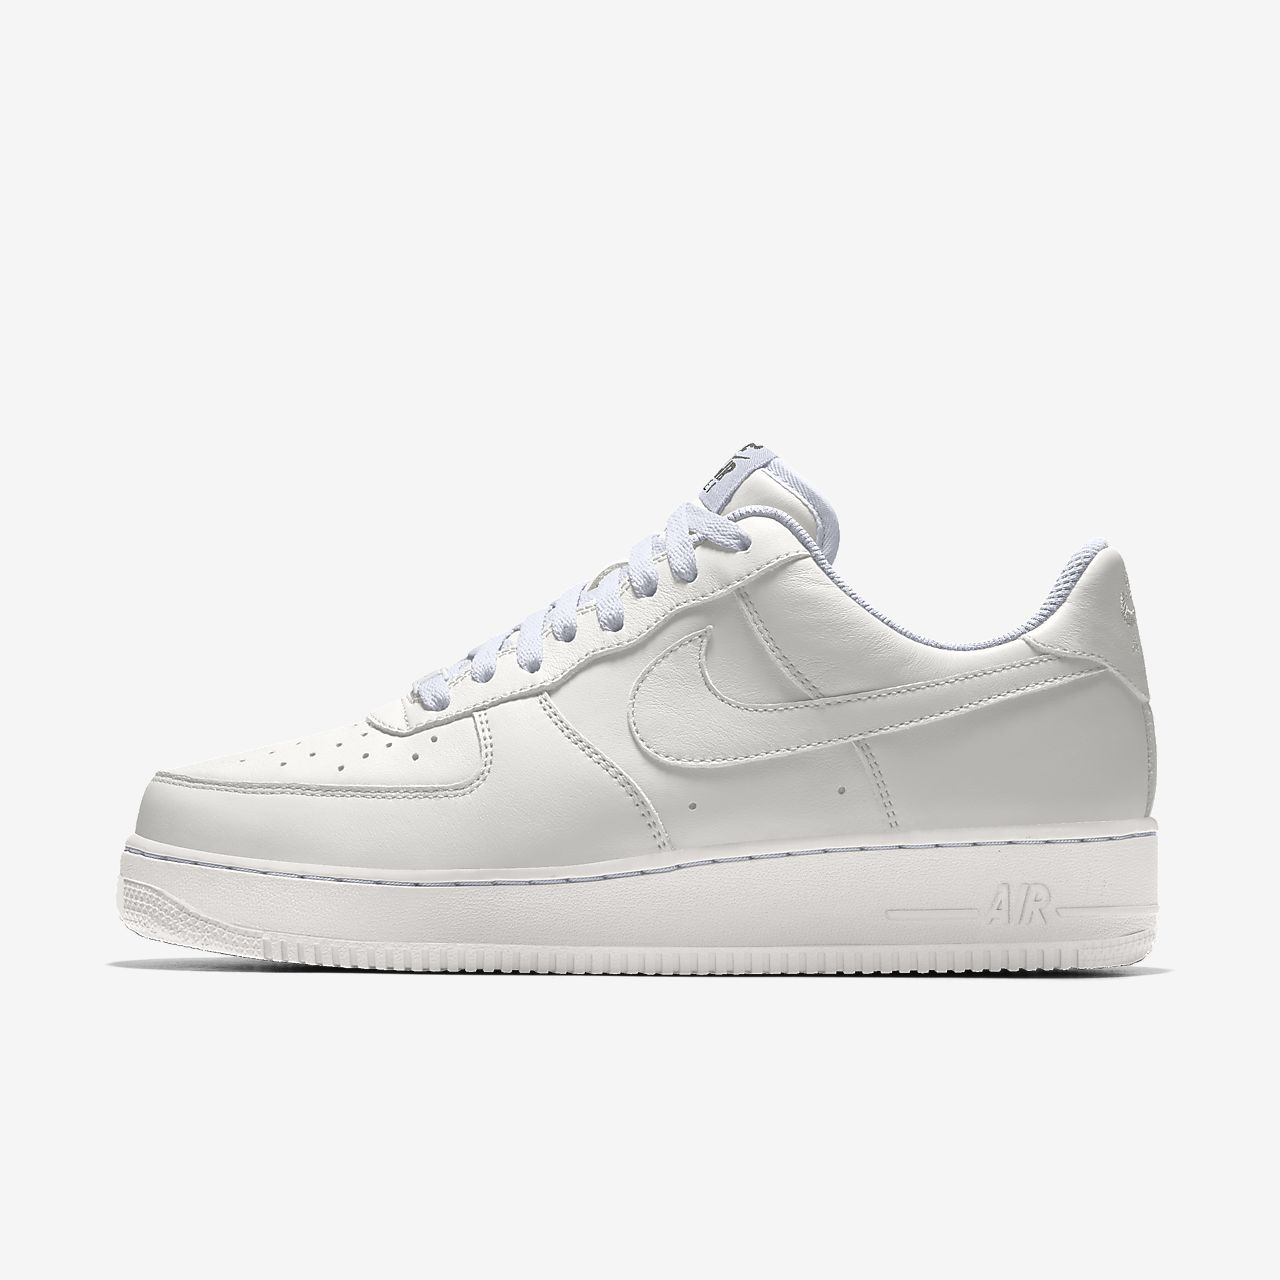 Nike Air Force 1 Low By You personalisierbarer Herrenschuh